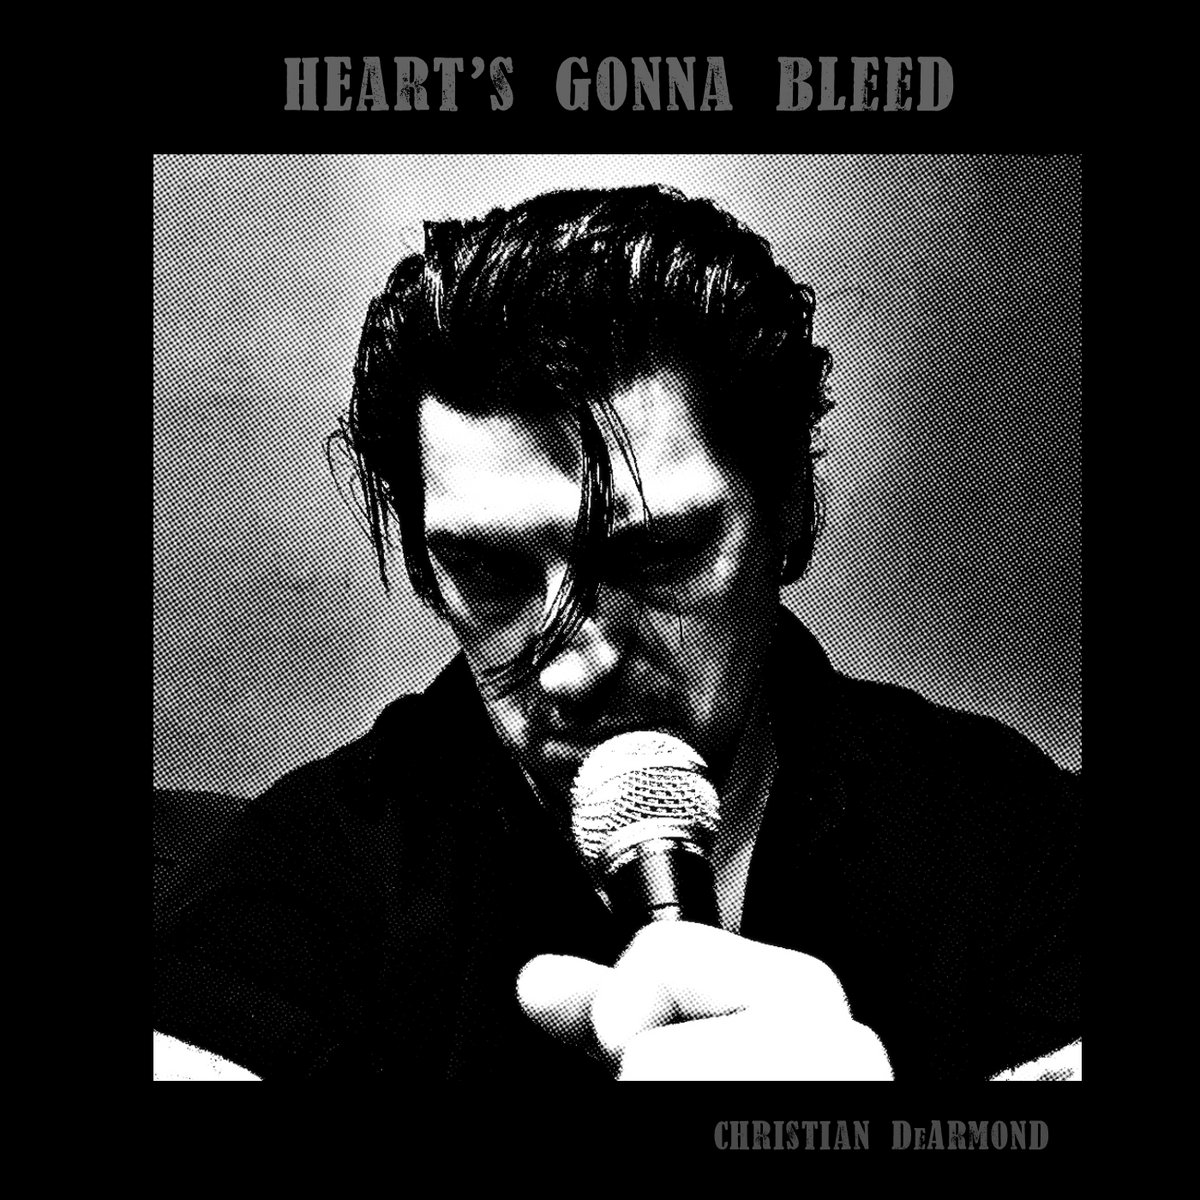 Heart's Gonna Bleed by Christian DeArmond